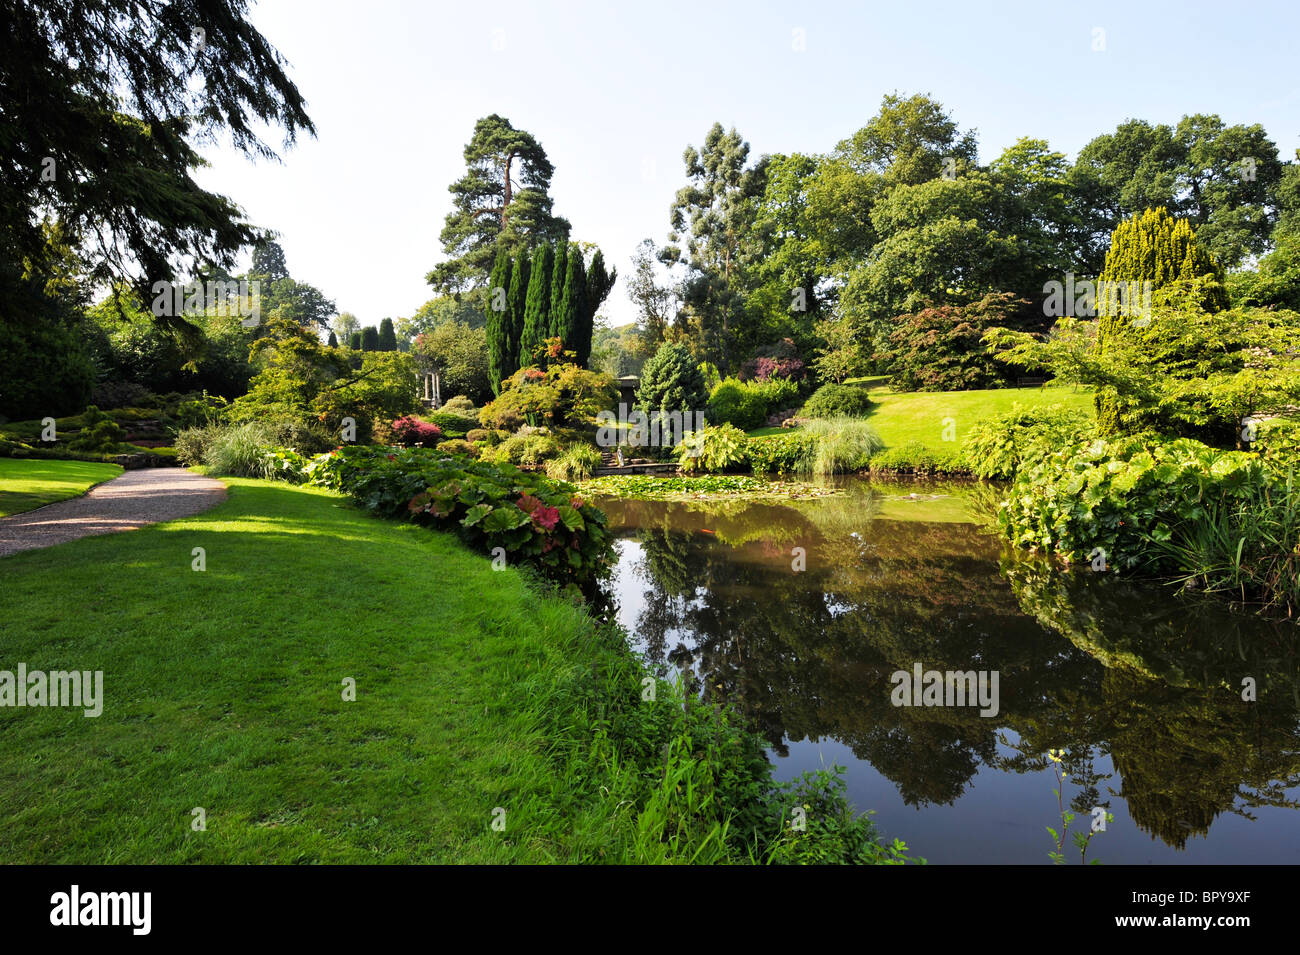 British gardens are glorious in the lengthening evening shadows. The Temple garden in Cheshire. - Stock Image